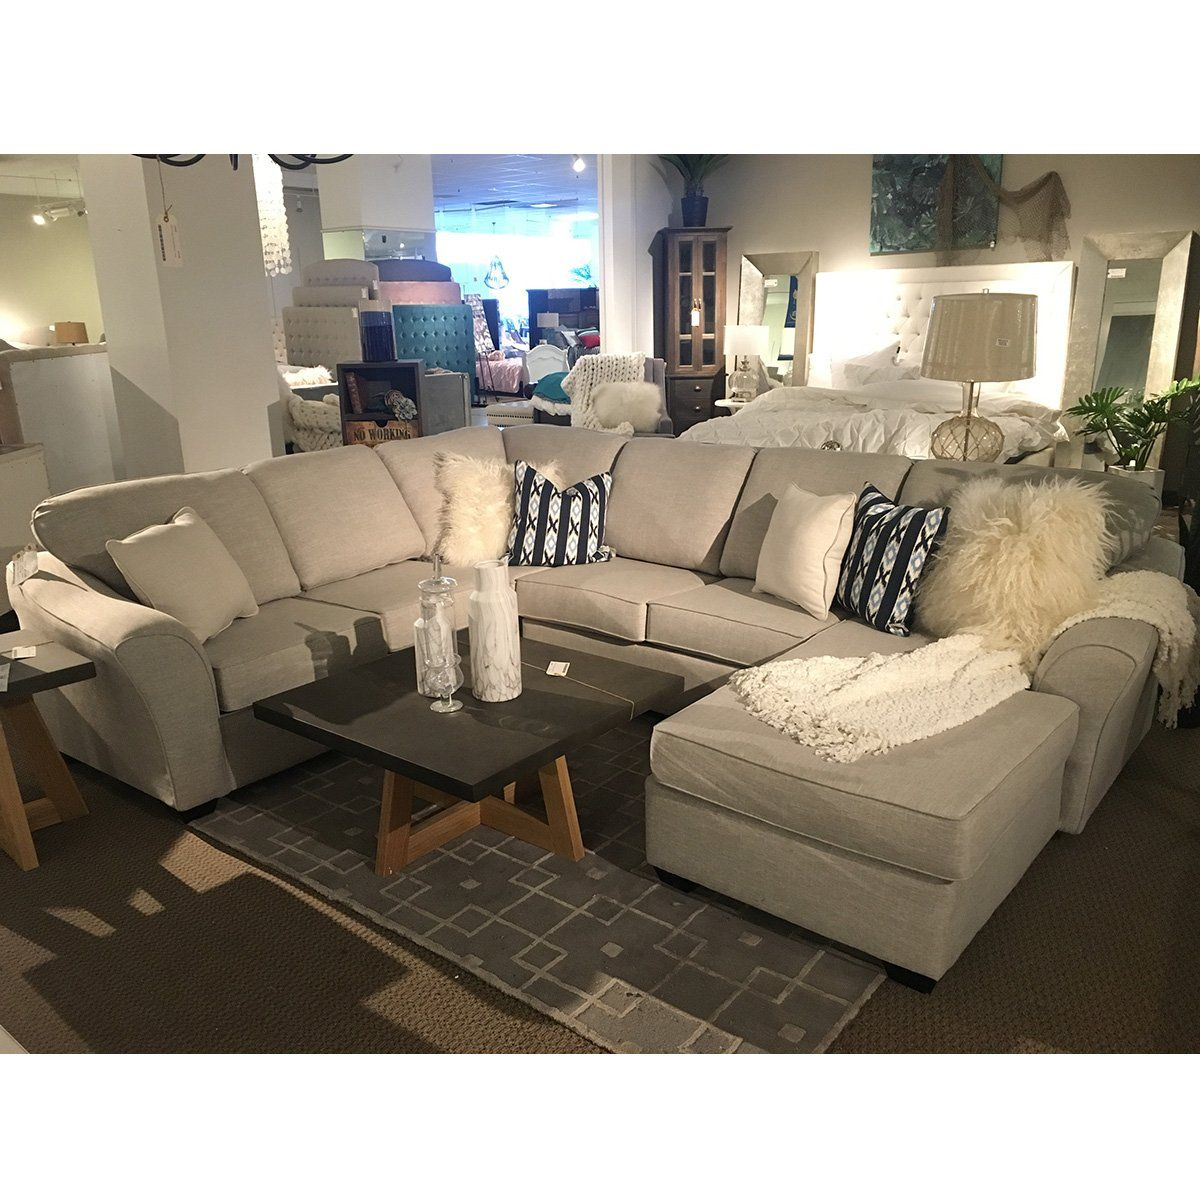 Tyson Custom Sectional, Made in Canada 🇨🇦 | Calgary's Furniture Store